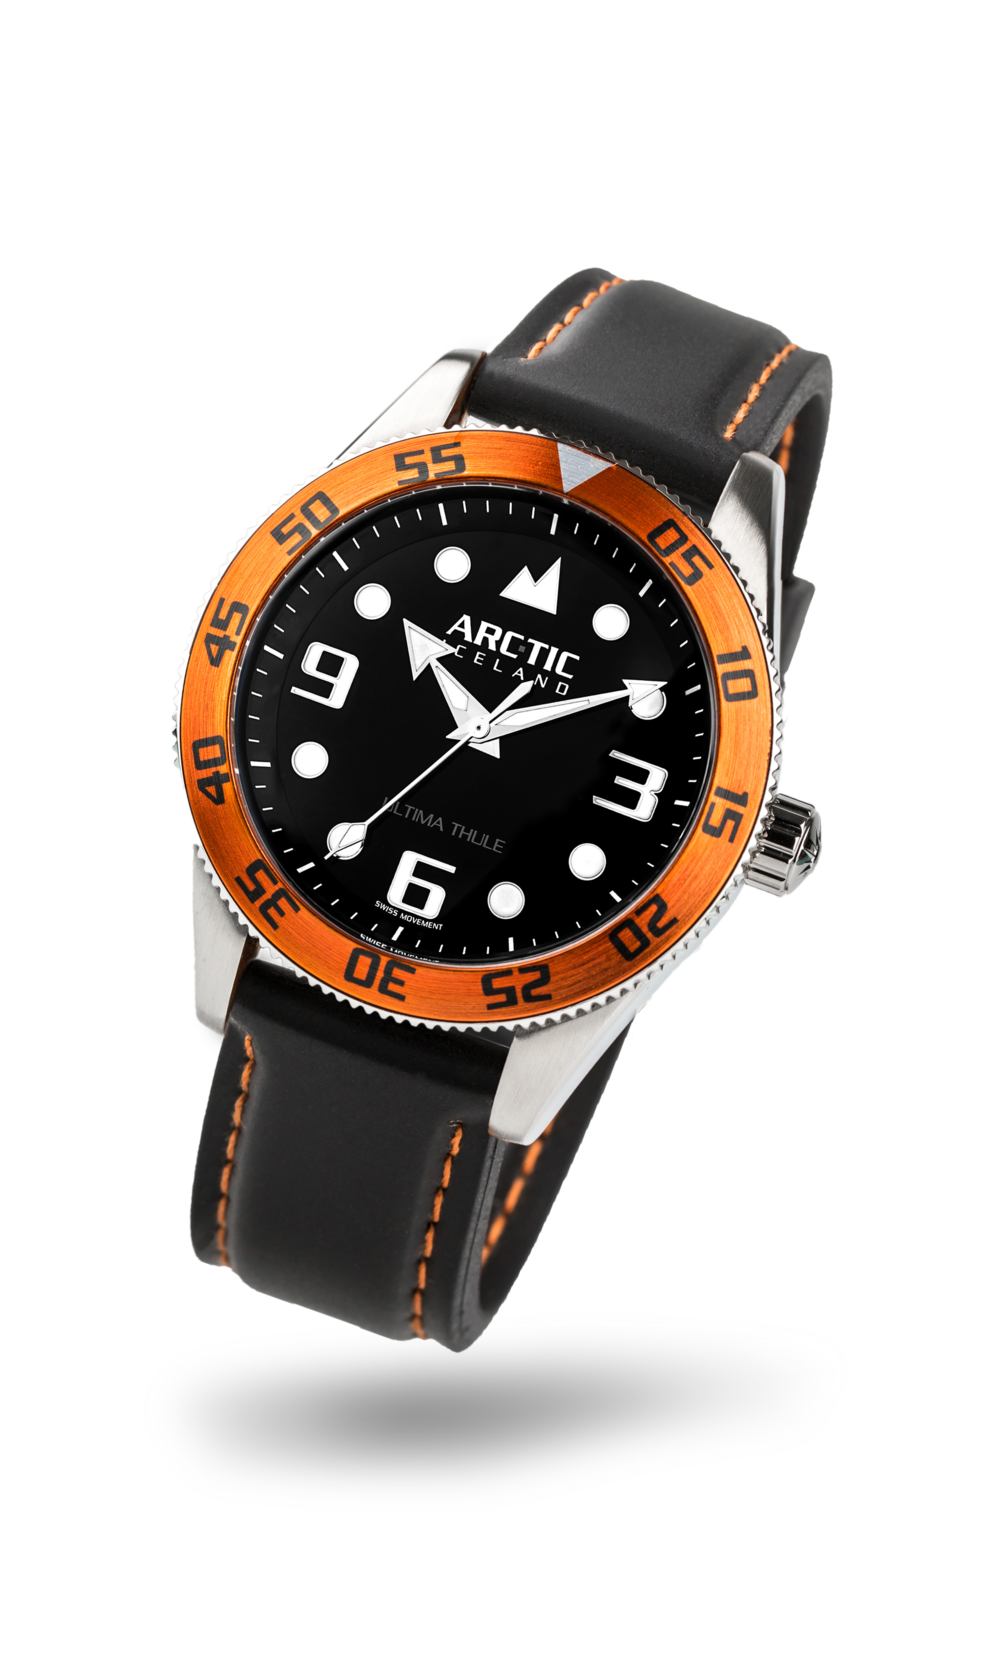 ARC-TIC Iceland UT Orange with rubber strap  Lear More